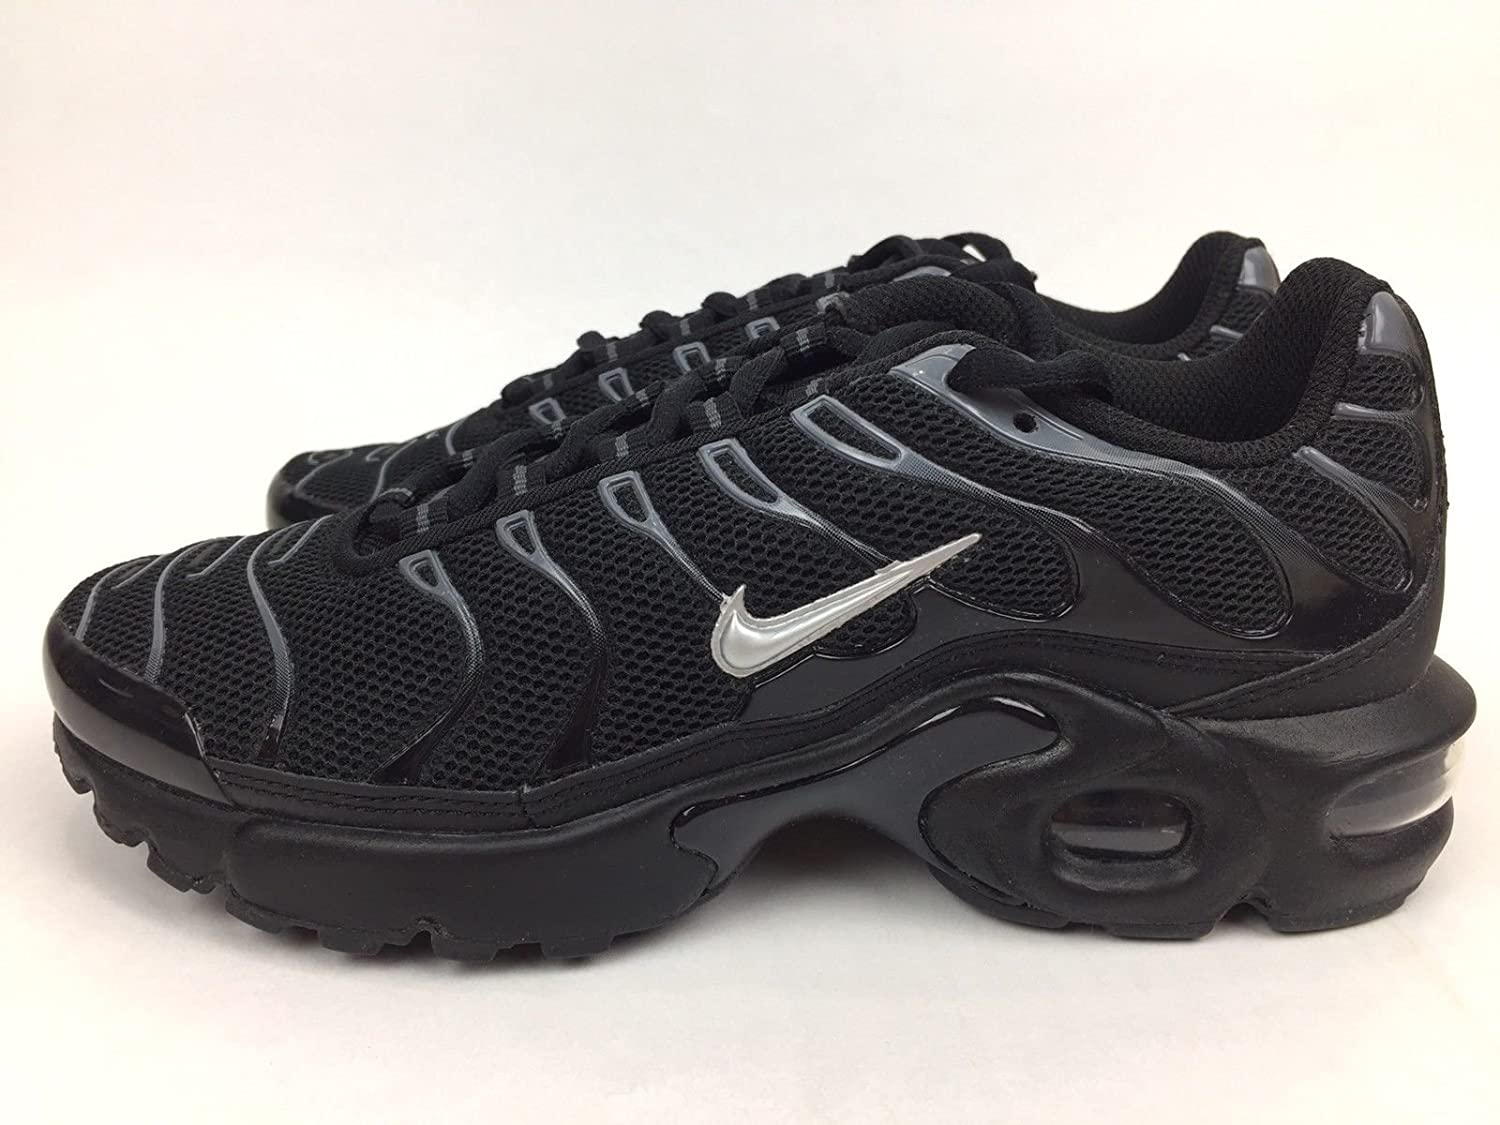 competitive price 51fc2 03d3d Amazon.com | Nike Air Max Plus TN (GS) Youth Sneaker Black ...